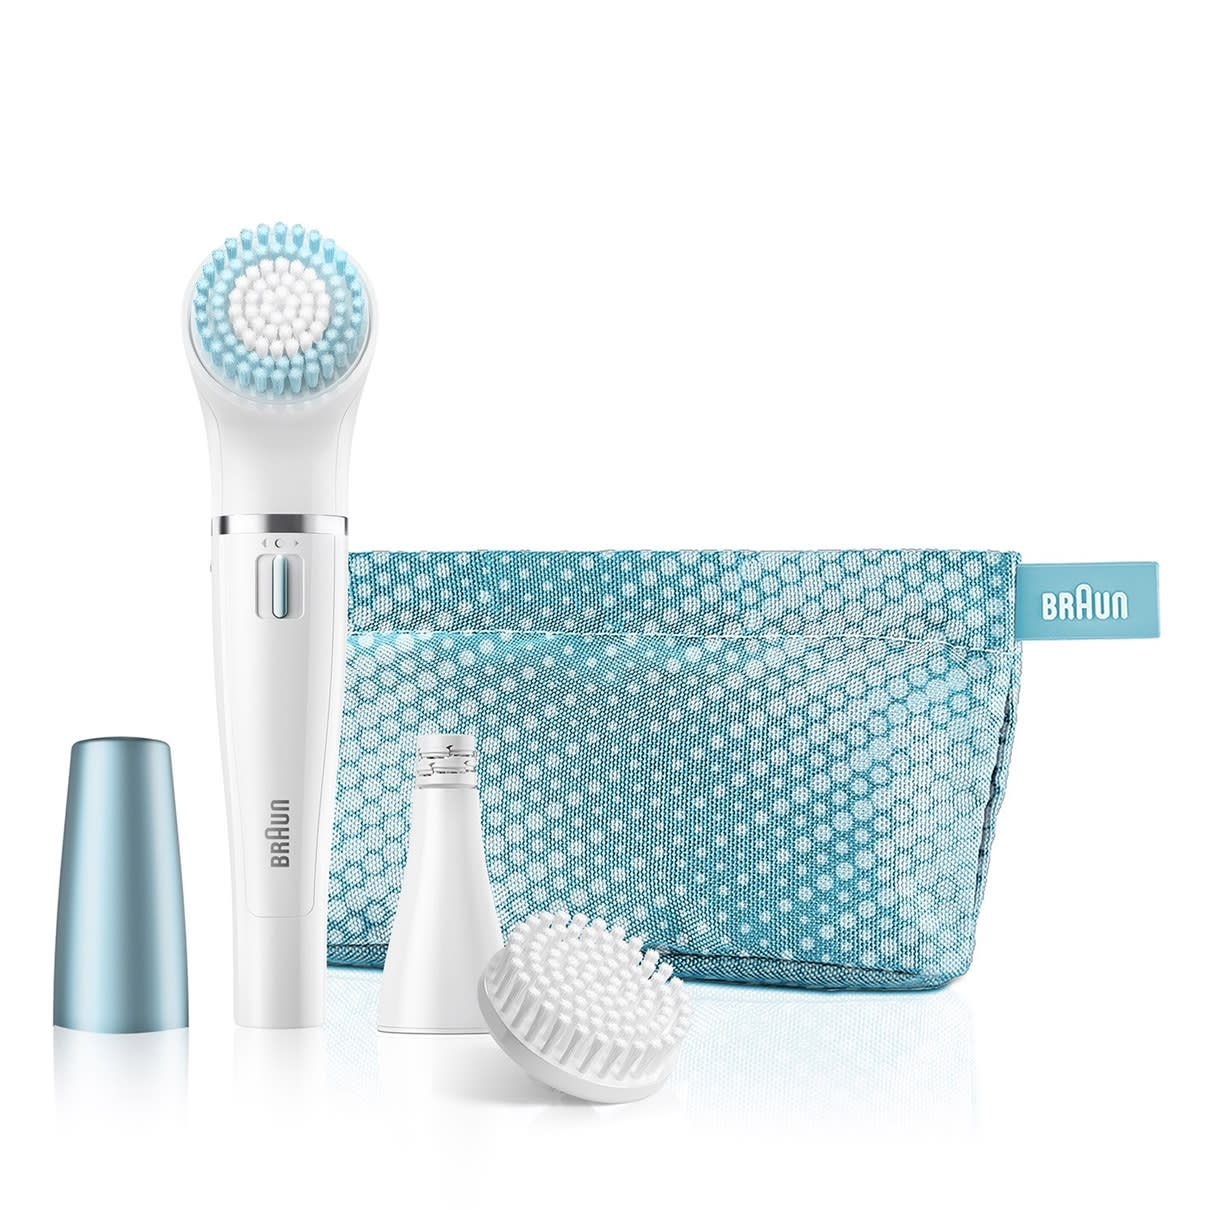 Braun Face 820 Premium Edition - facial epilator & facial cleansing brush with micro-oscillations - including a lighted mirror and beauty pouch